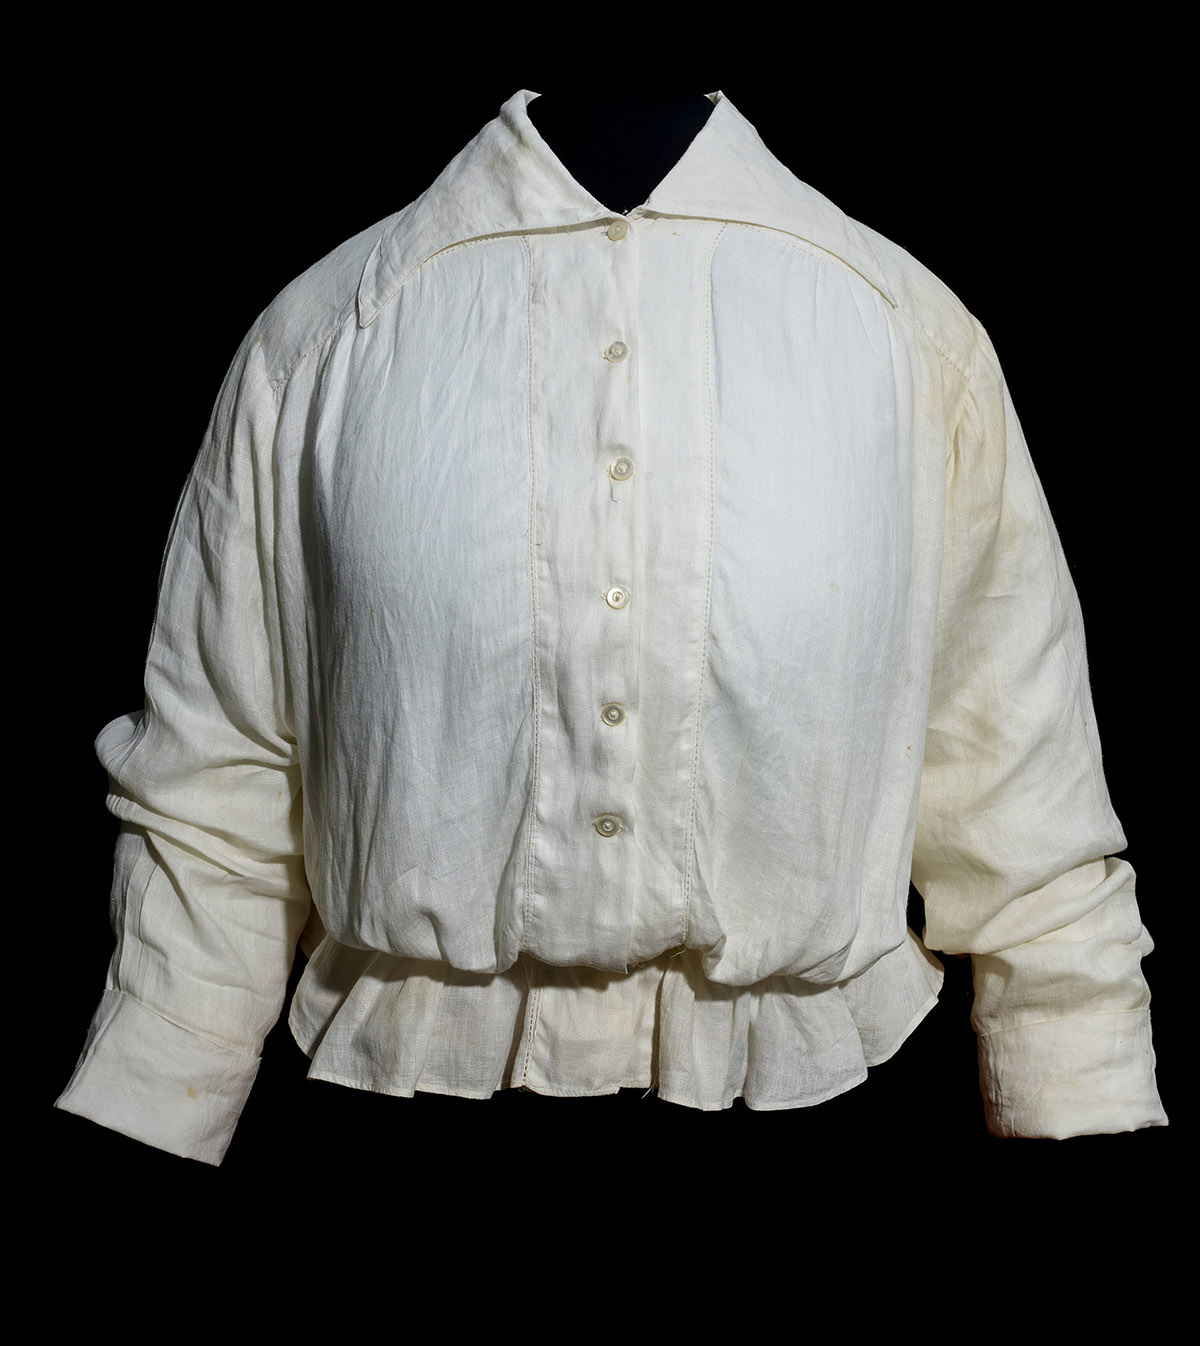 A white shirt that appears to be cotton or linen. It has long sleeves, buttons up the front. There's a large color that would drape over the wearer's shoulders. It gathers around the waist and the hem flairs out in a bit of skirt.